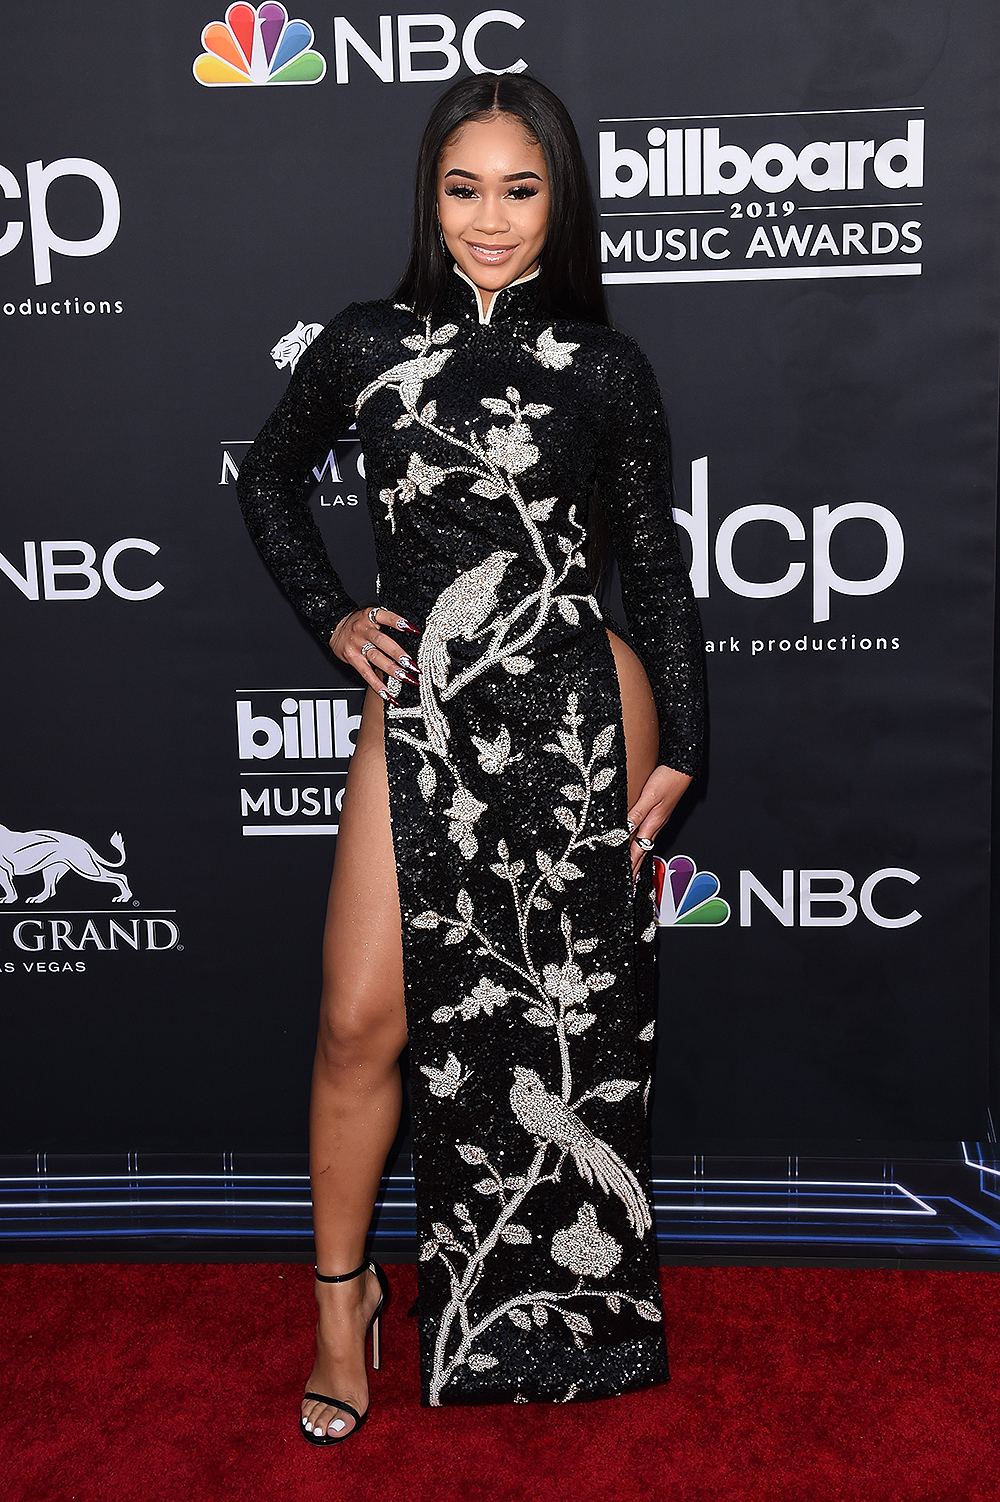 BBM AWARDS 2019 RED CARPET SAWEETIE.jpg